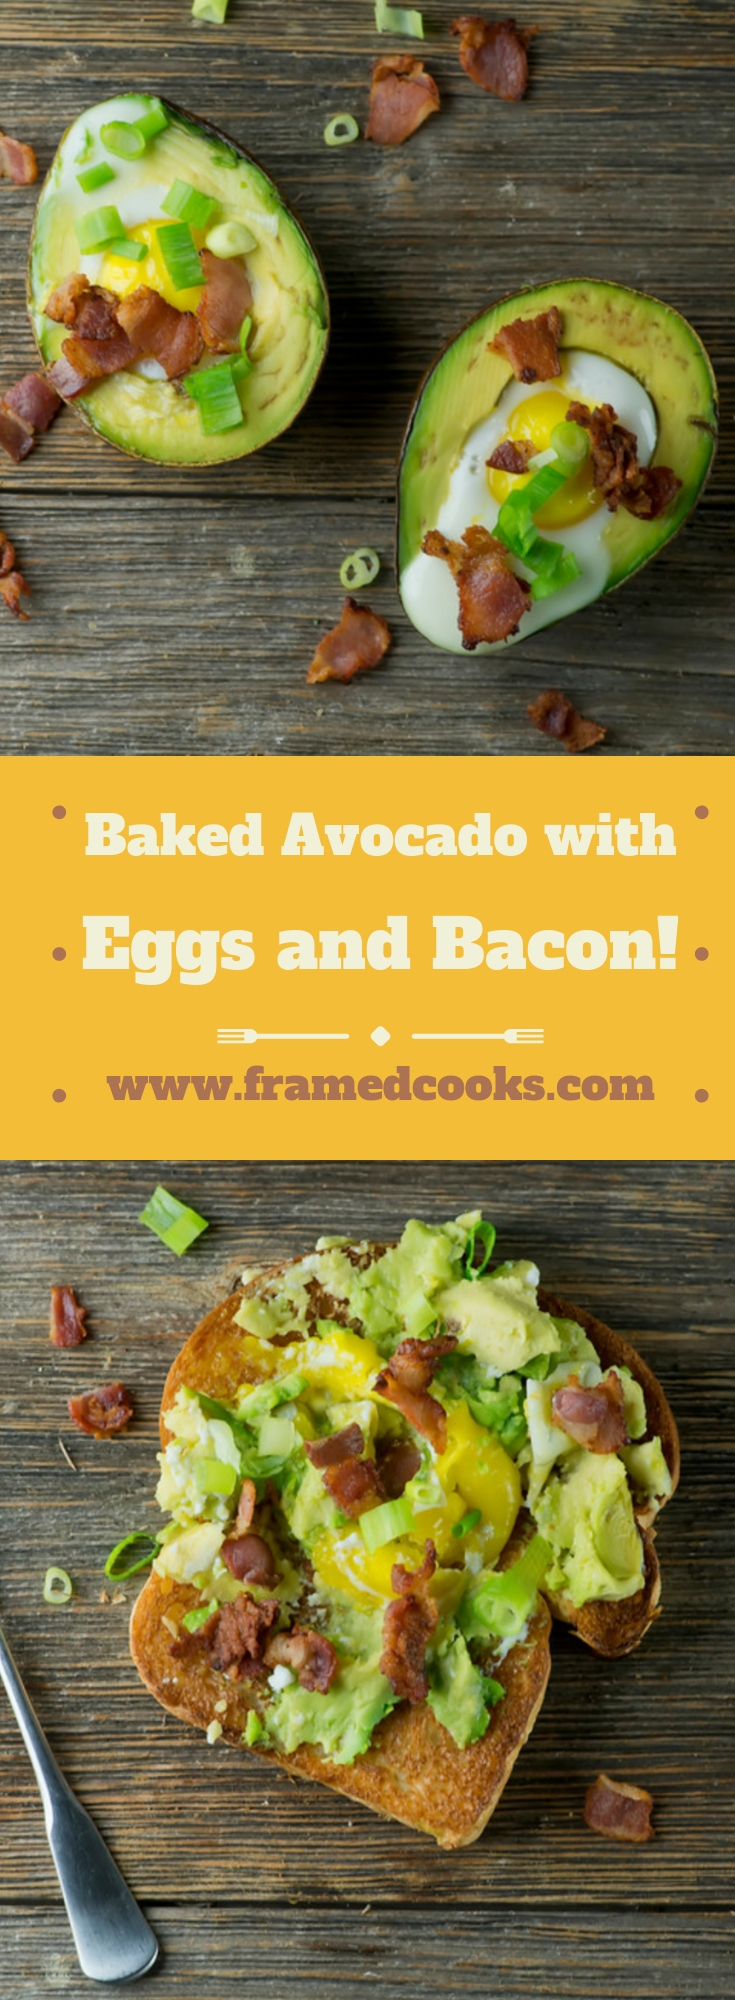 This easy recipe for baked avocado with eggs and bacon cooks up your egg in the creamy center of the avocado for maximum healthy deliciousness!